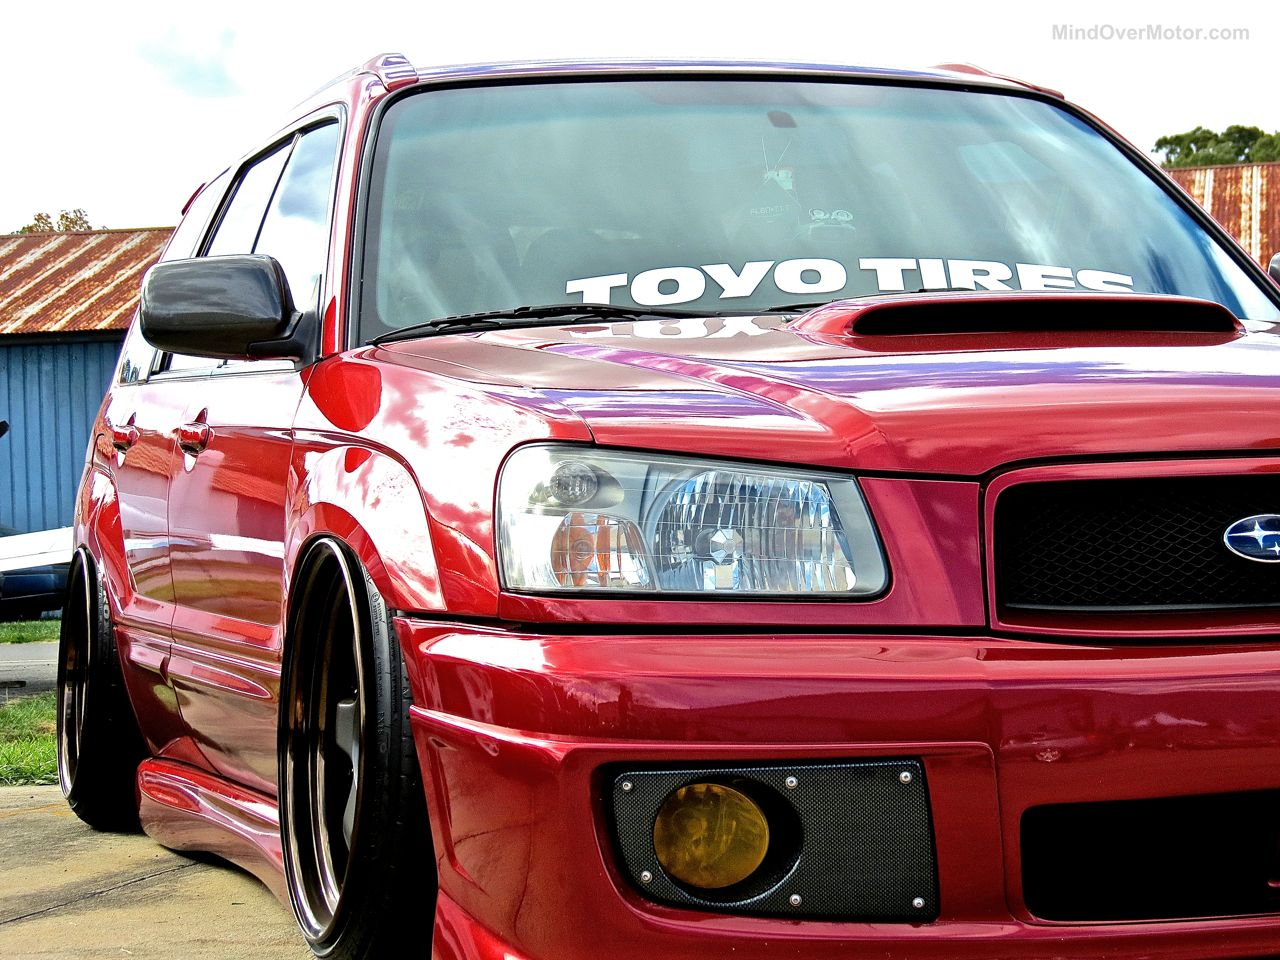 First Class Fitment Subaru Forester XT